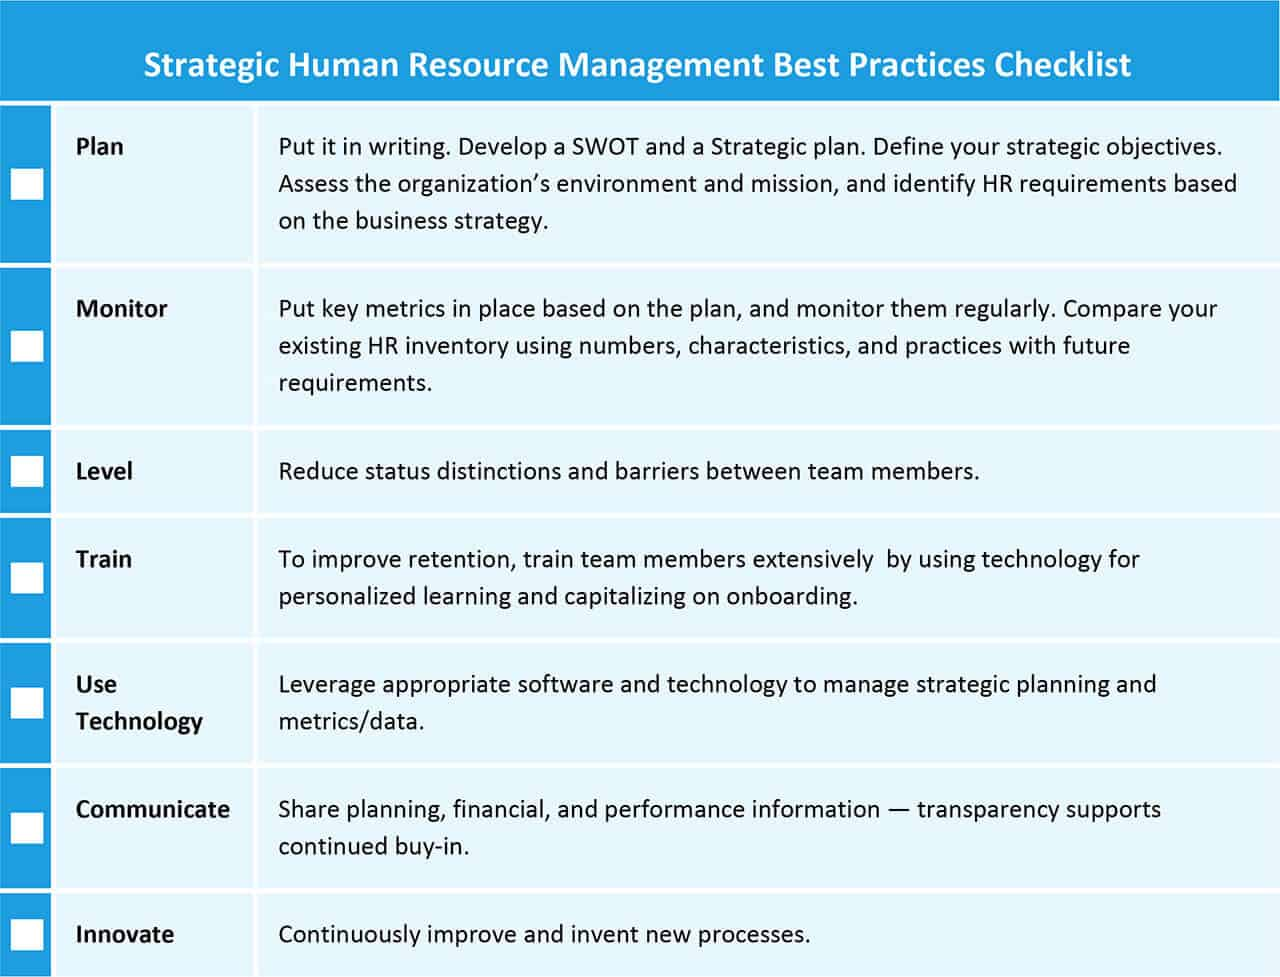 Strategic Human Resource Management Best Practices Checklist